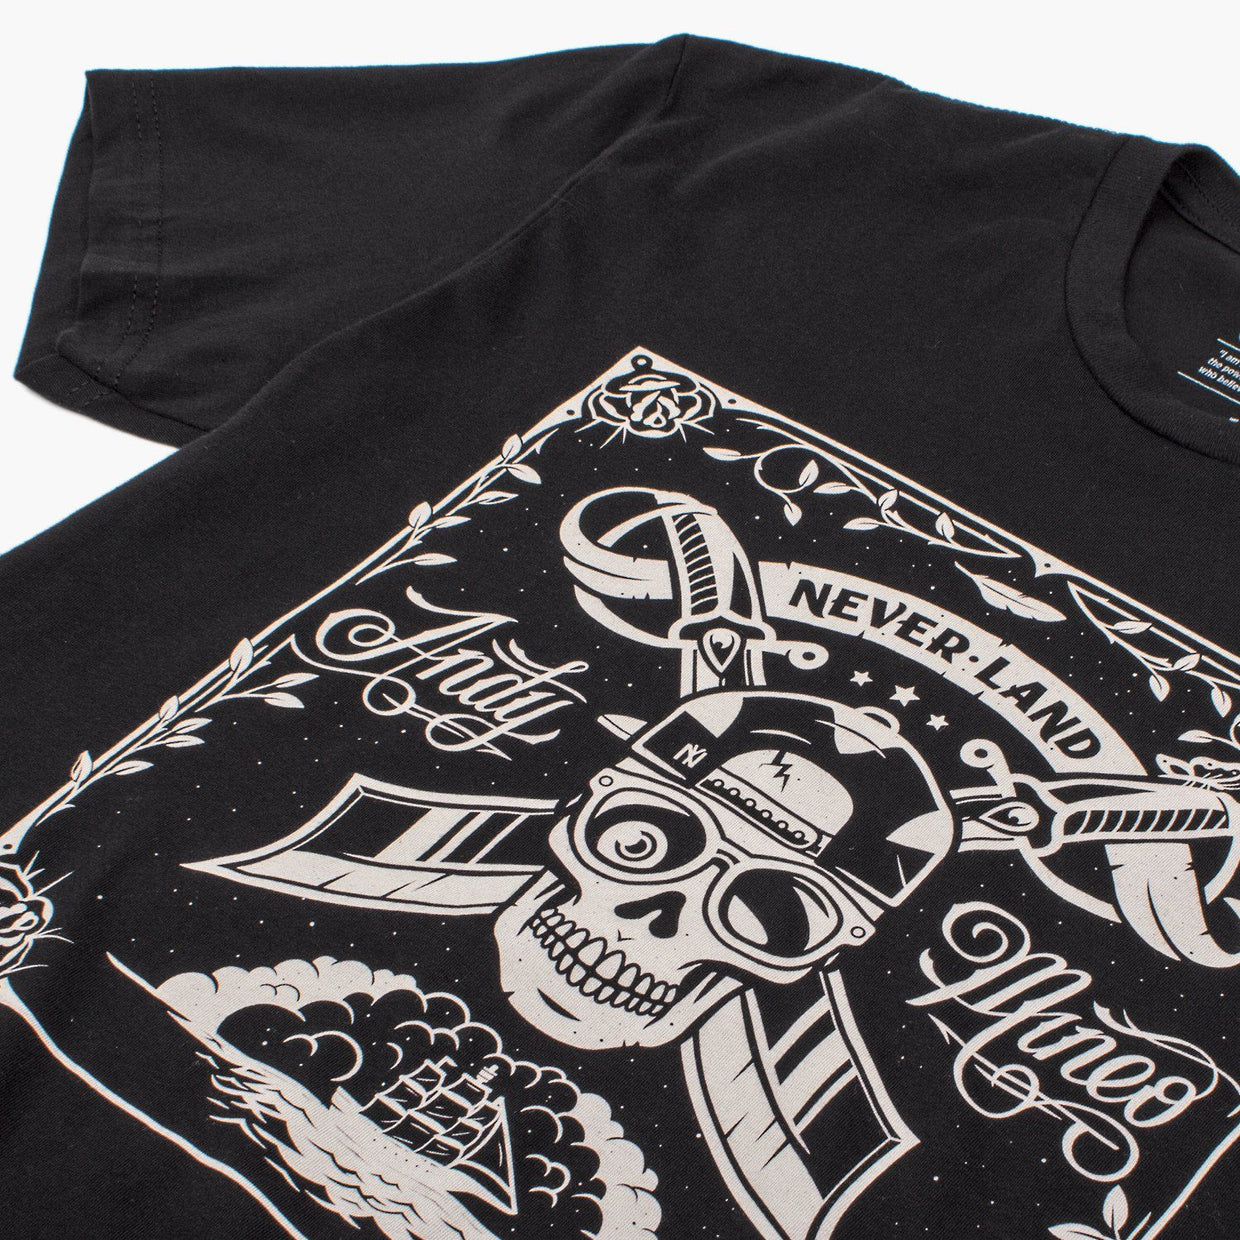 Andy Mineo 'Never Land Skull' T-Shirt - Close